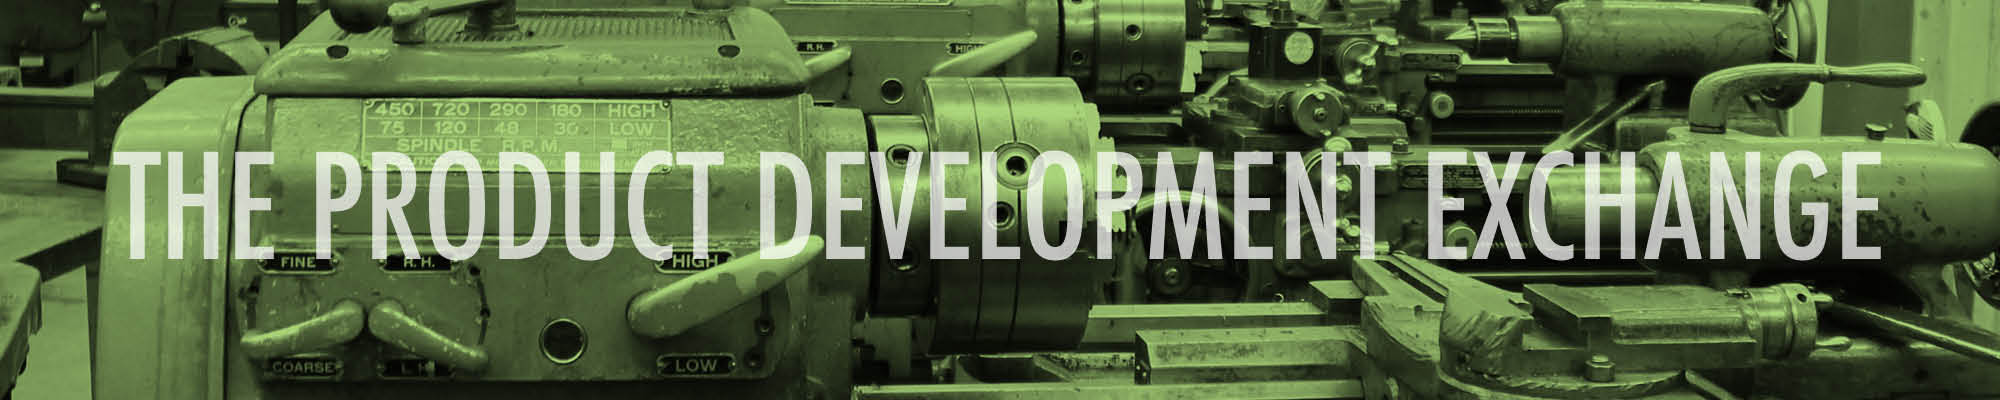 Product Development Exchange Title Card